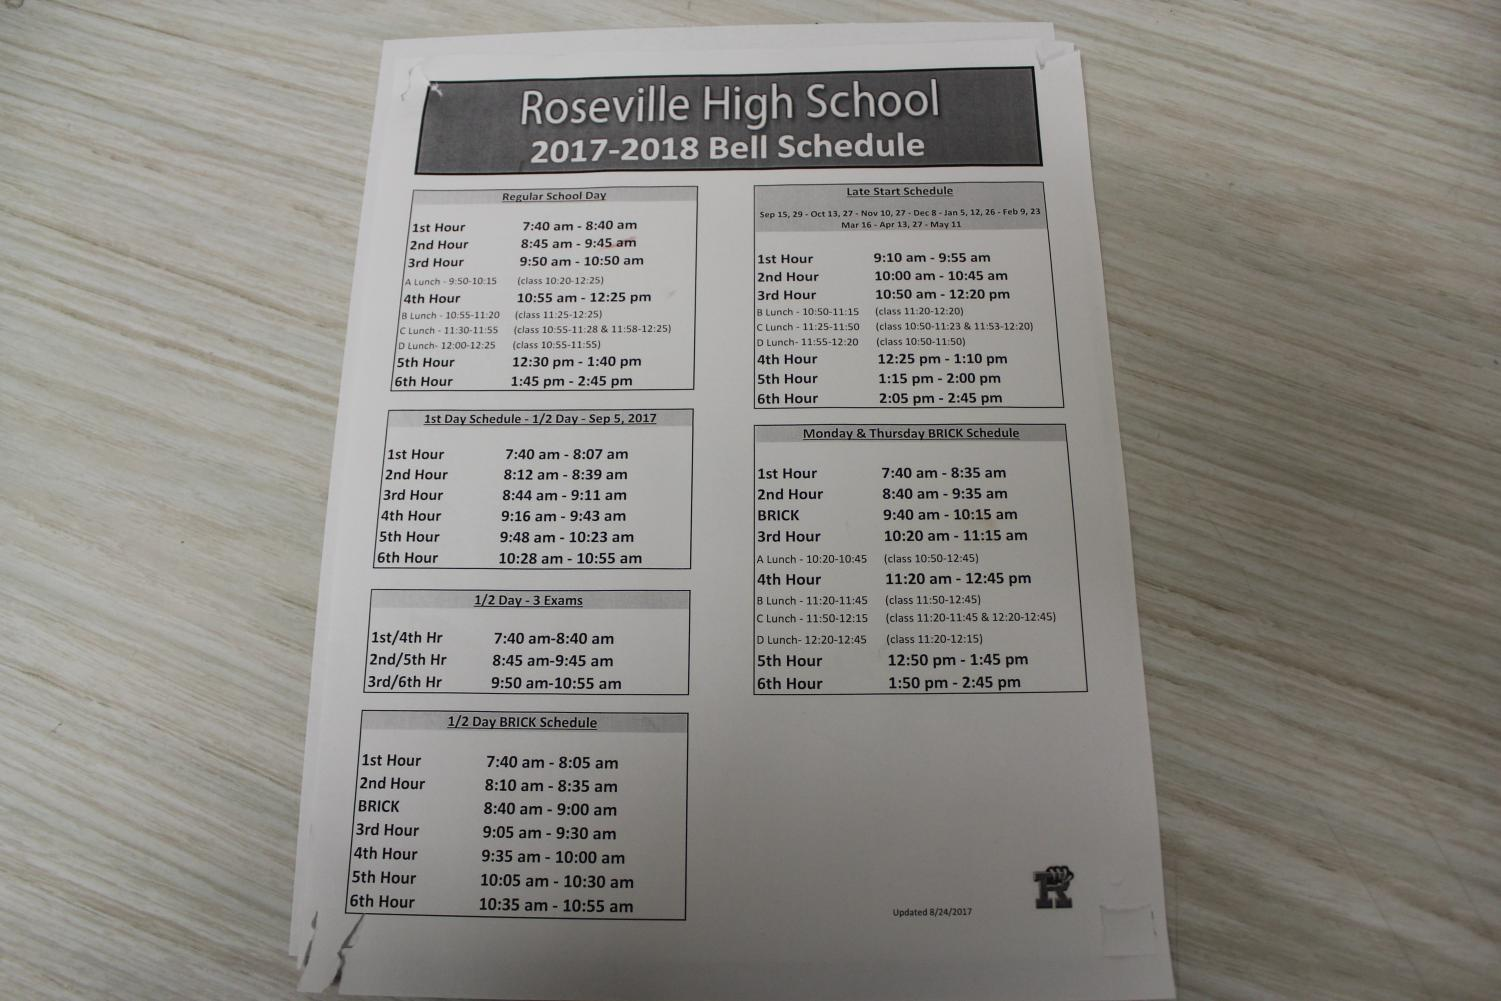 The school schedule